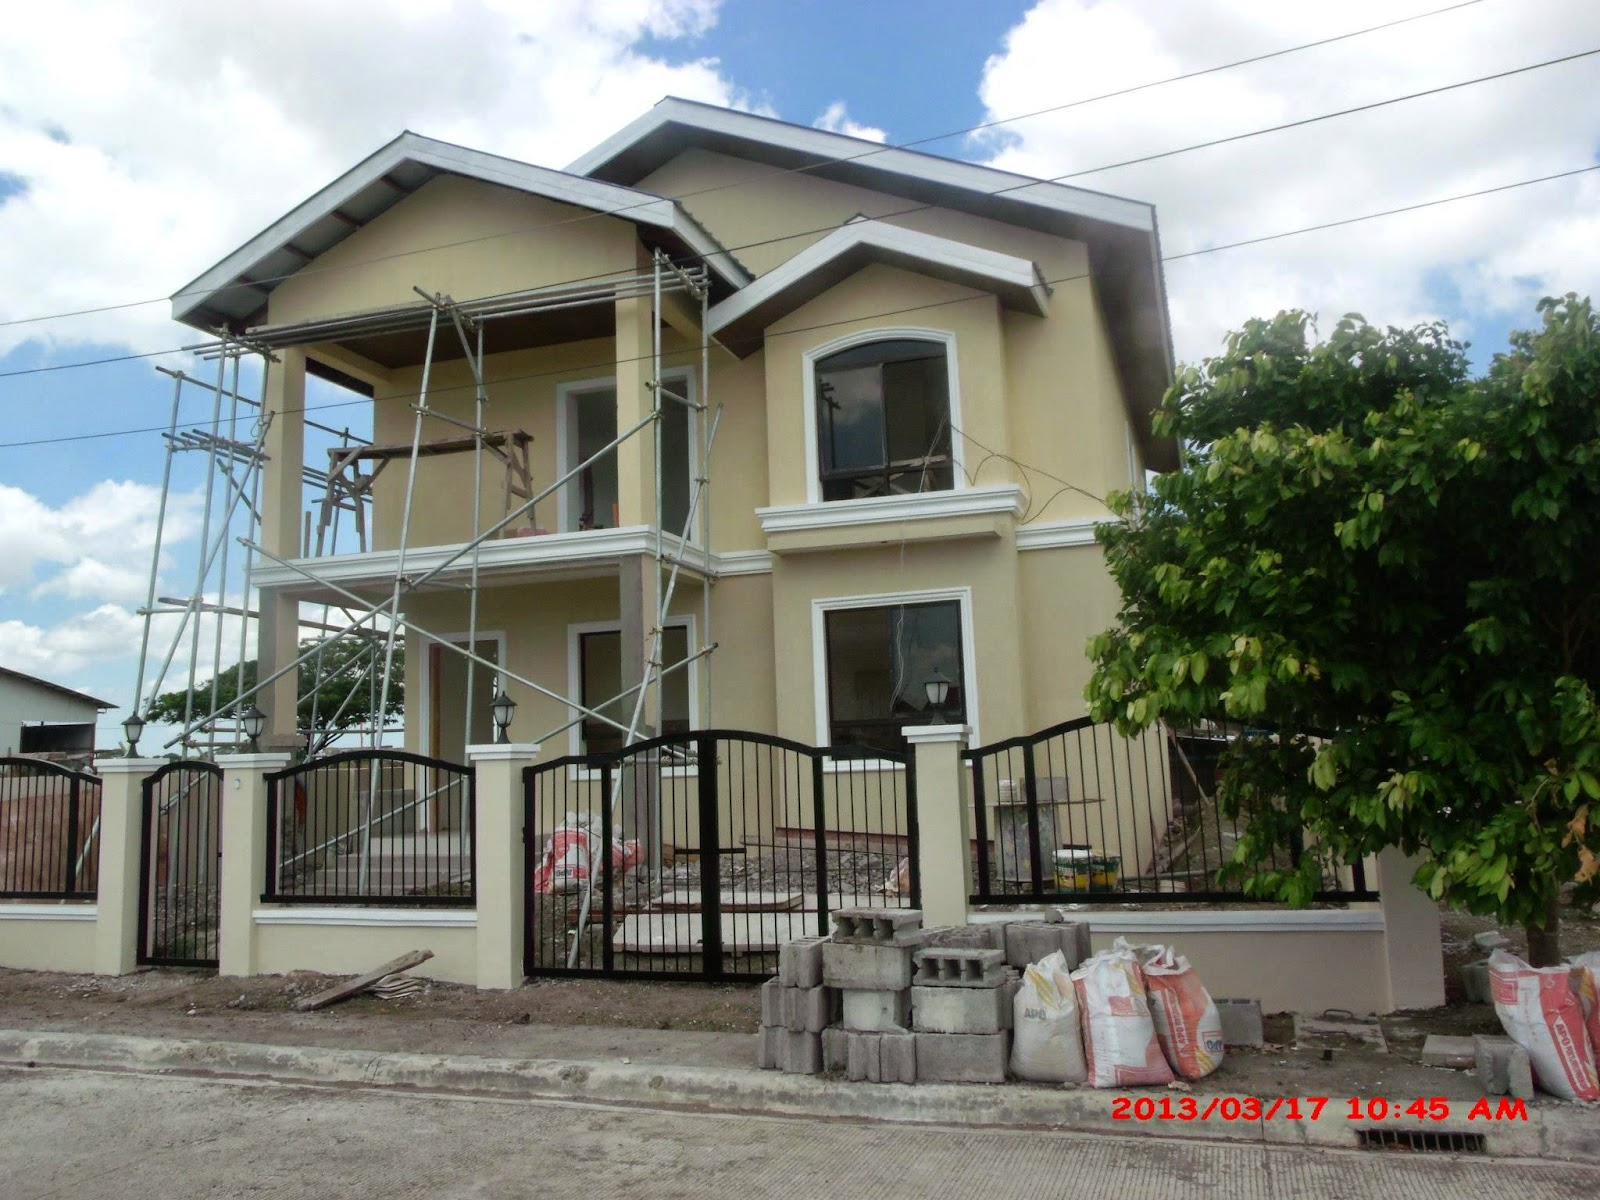 Savannah trails house construction project in oton iloilo for House construction design